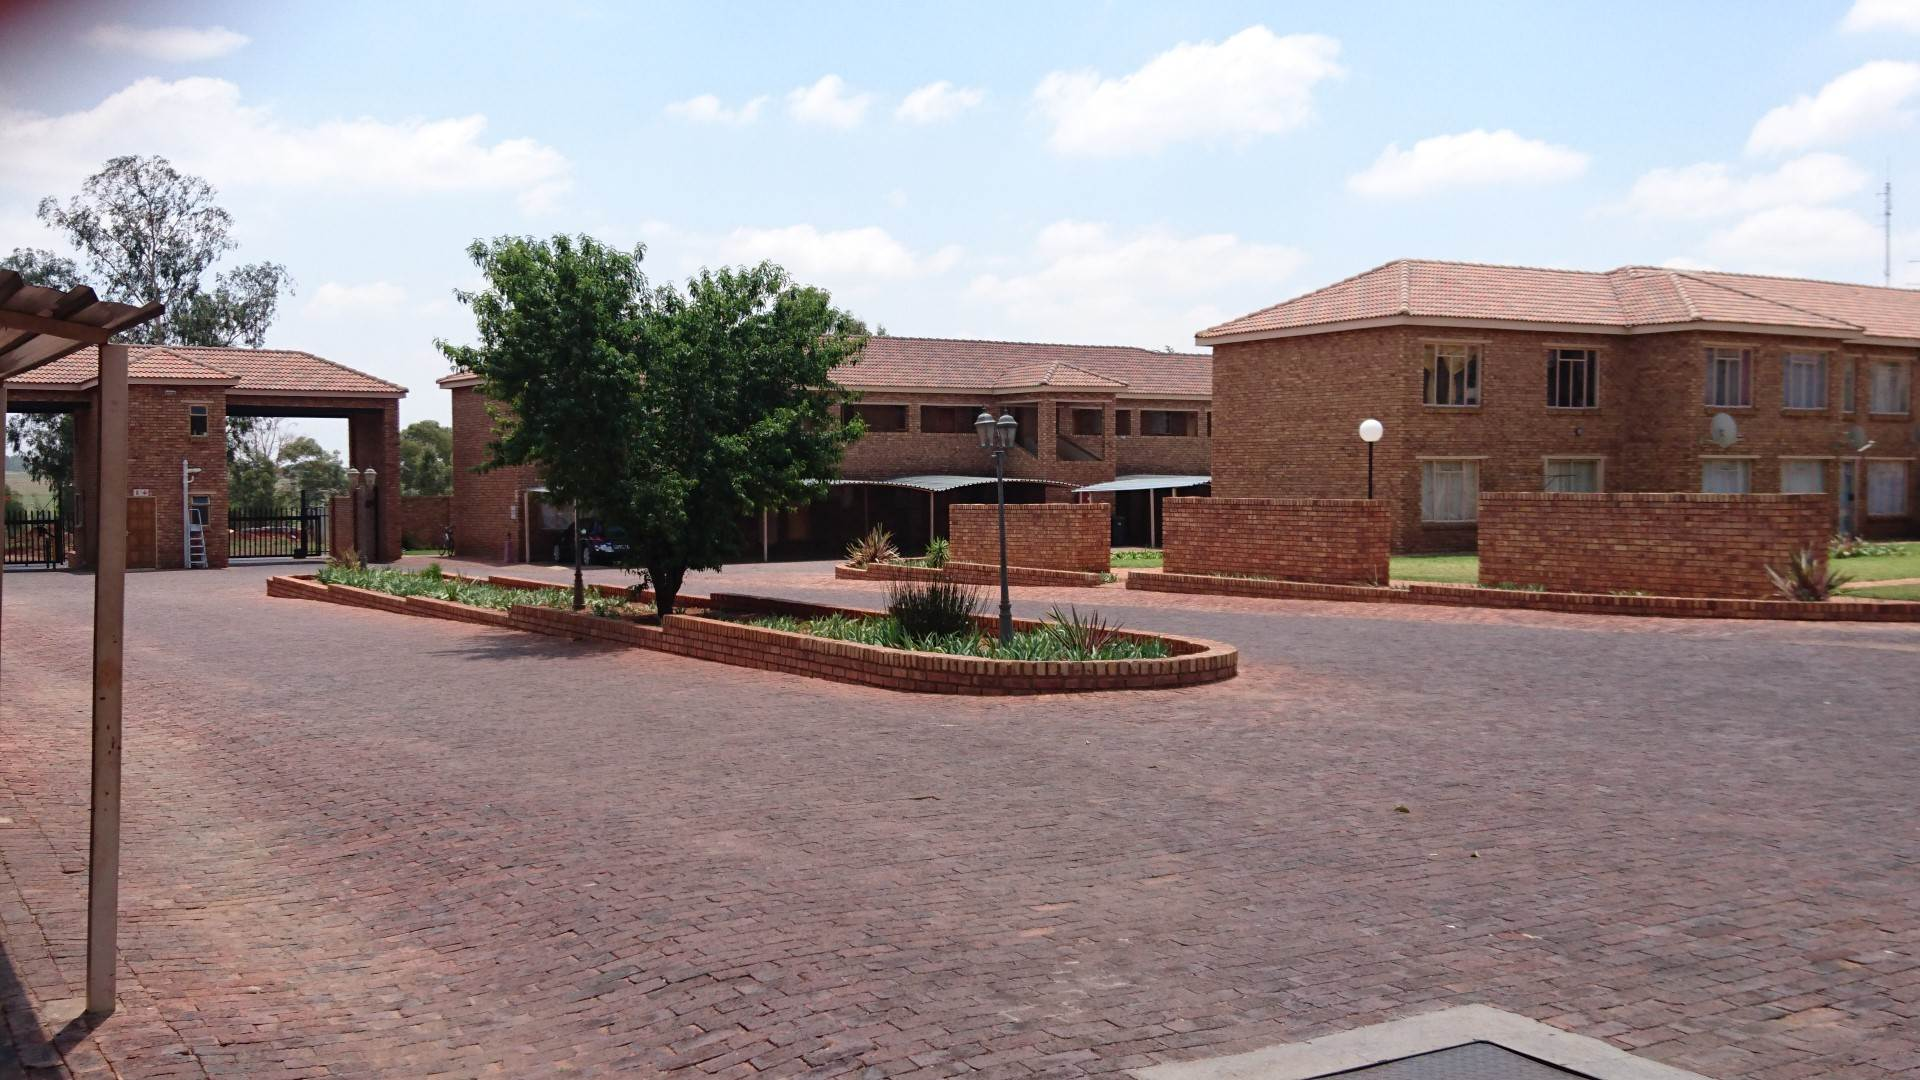 1 BedroomApartment For Sale In Krugersrus